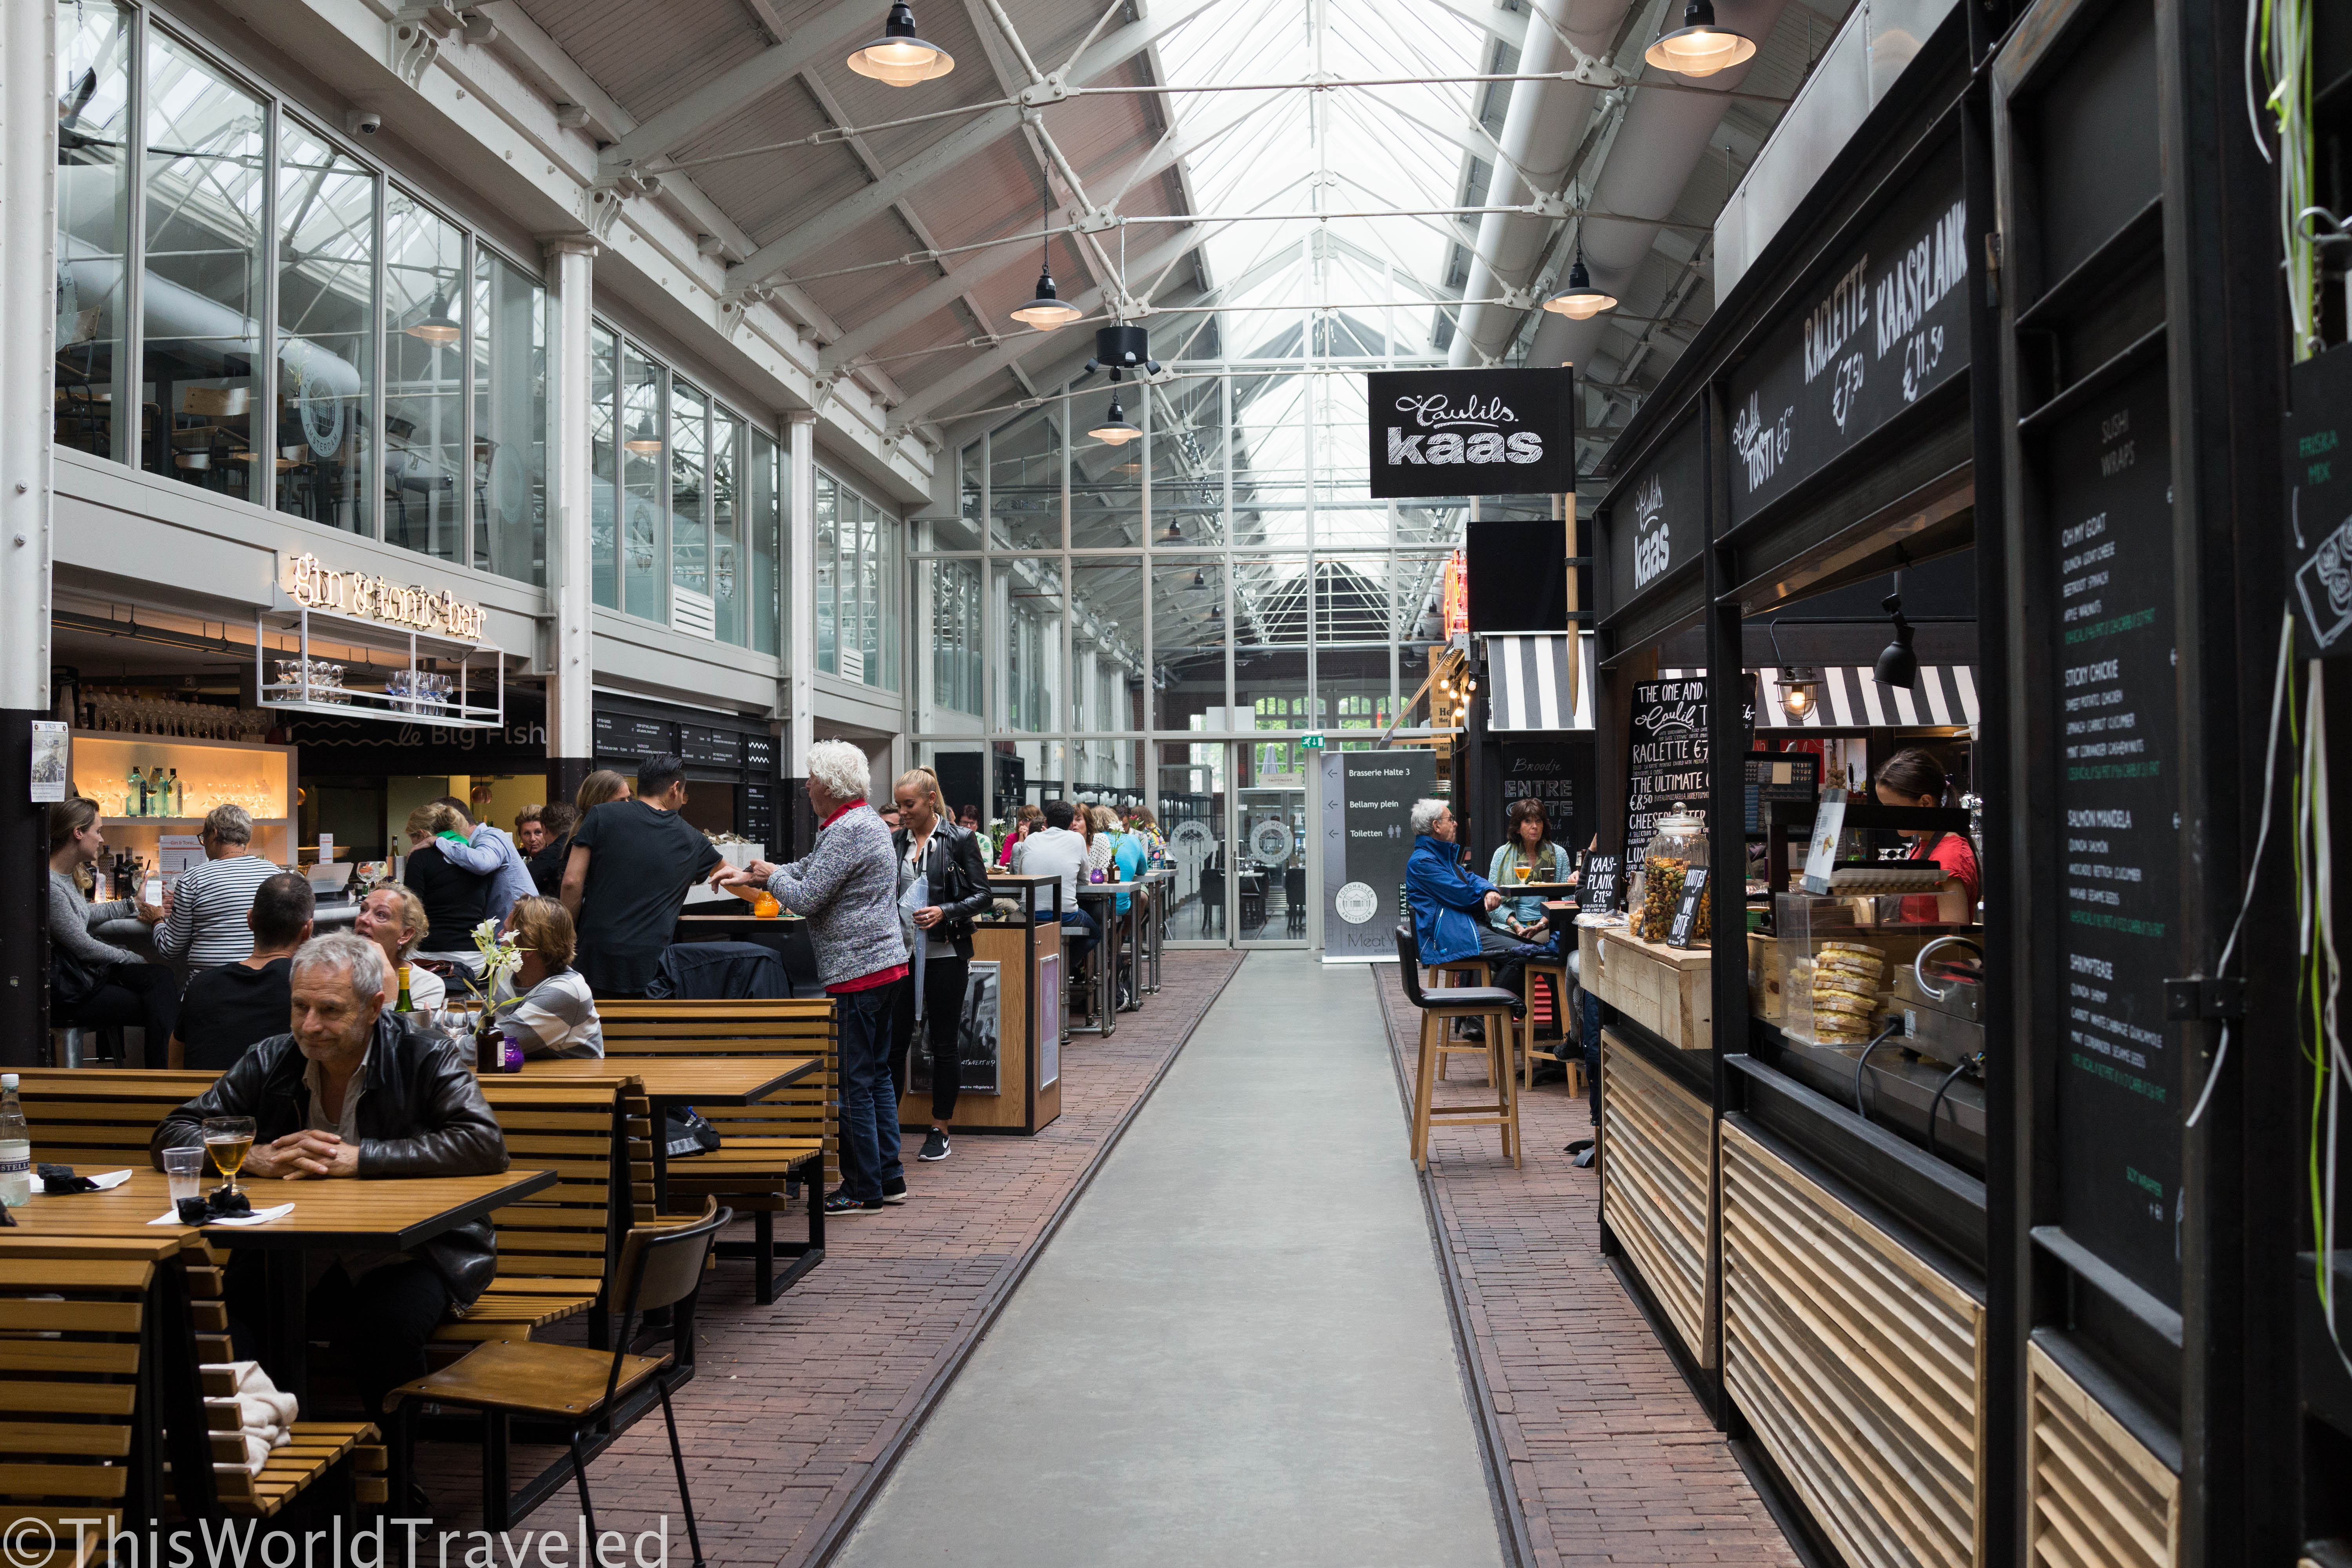 Why These Two Food Markets Should Be Included In Your Next